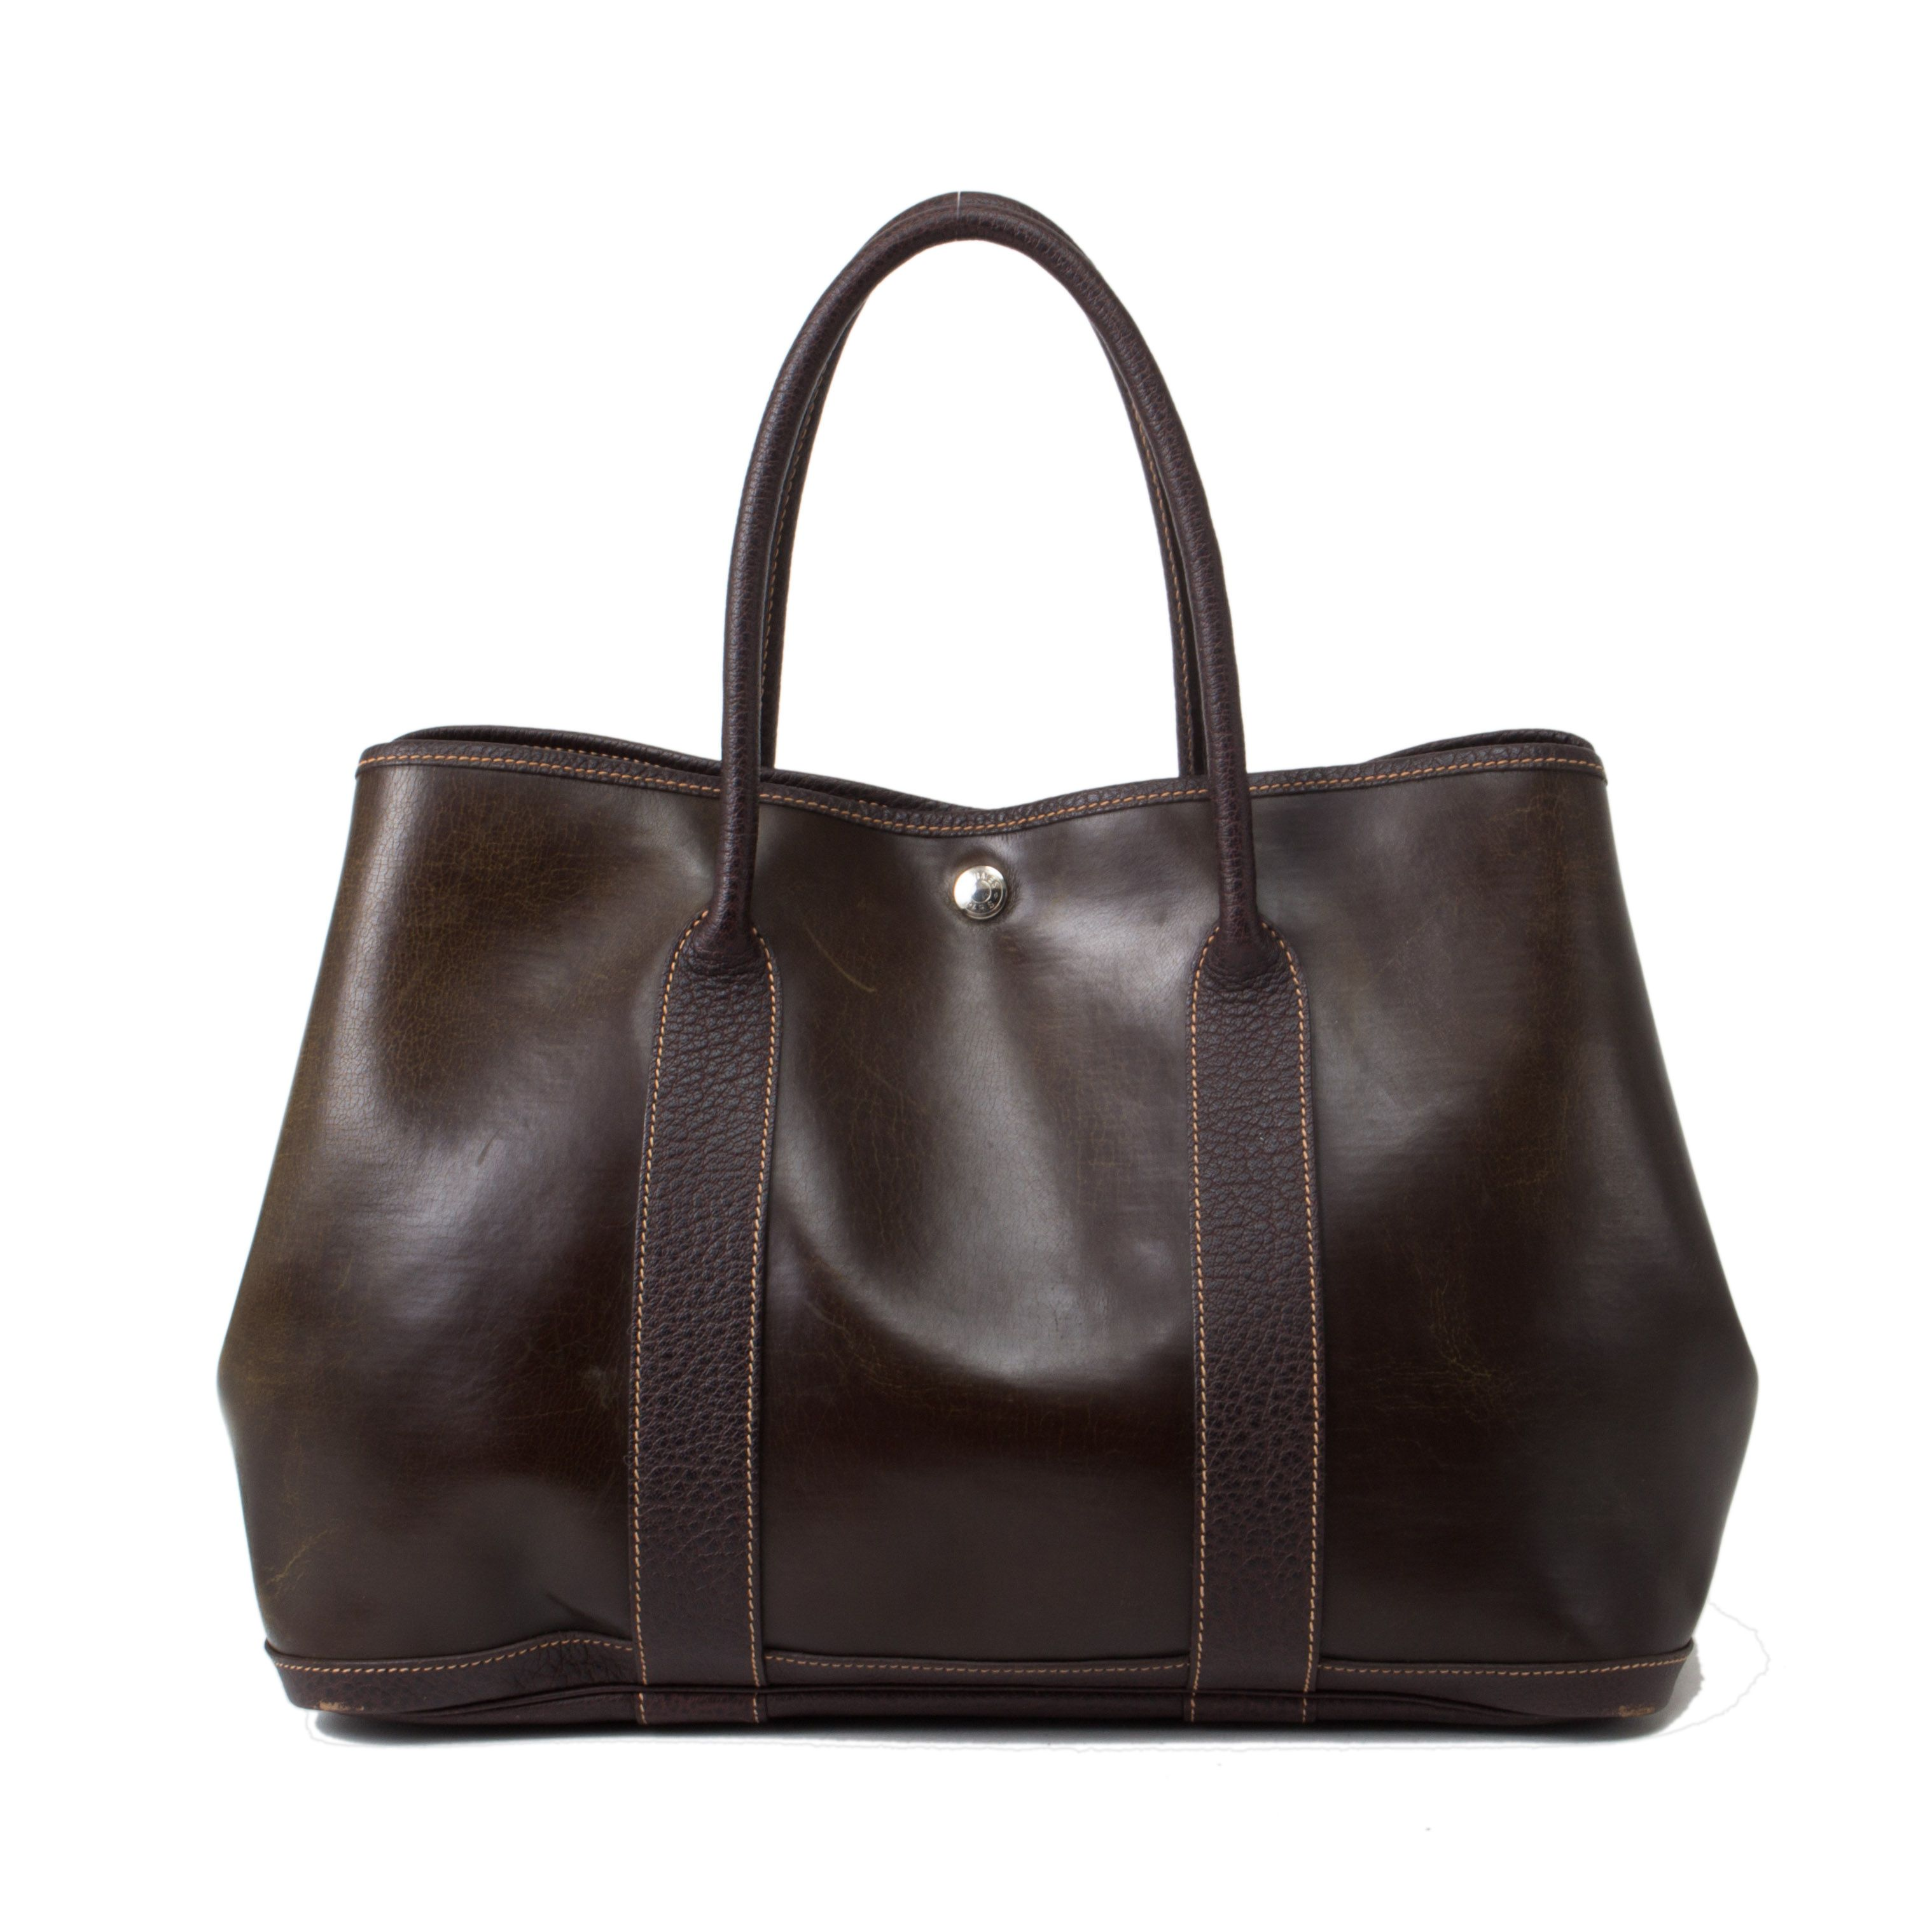 Hermes brown leather  Garden  Party bag. Available at lxrco.com for  599 640fdb717bc5c